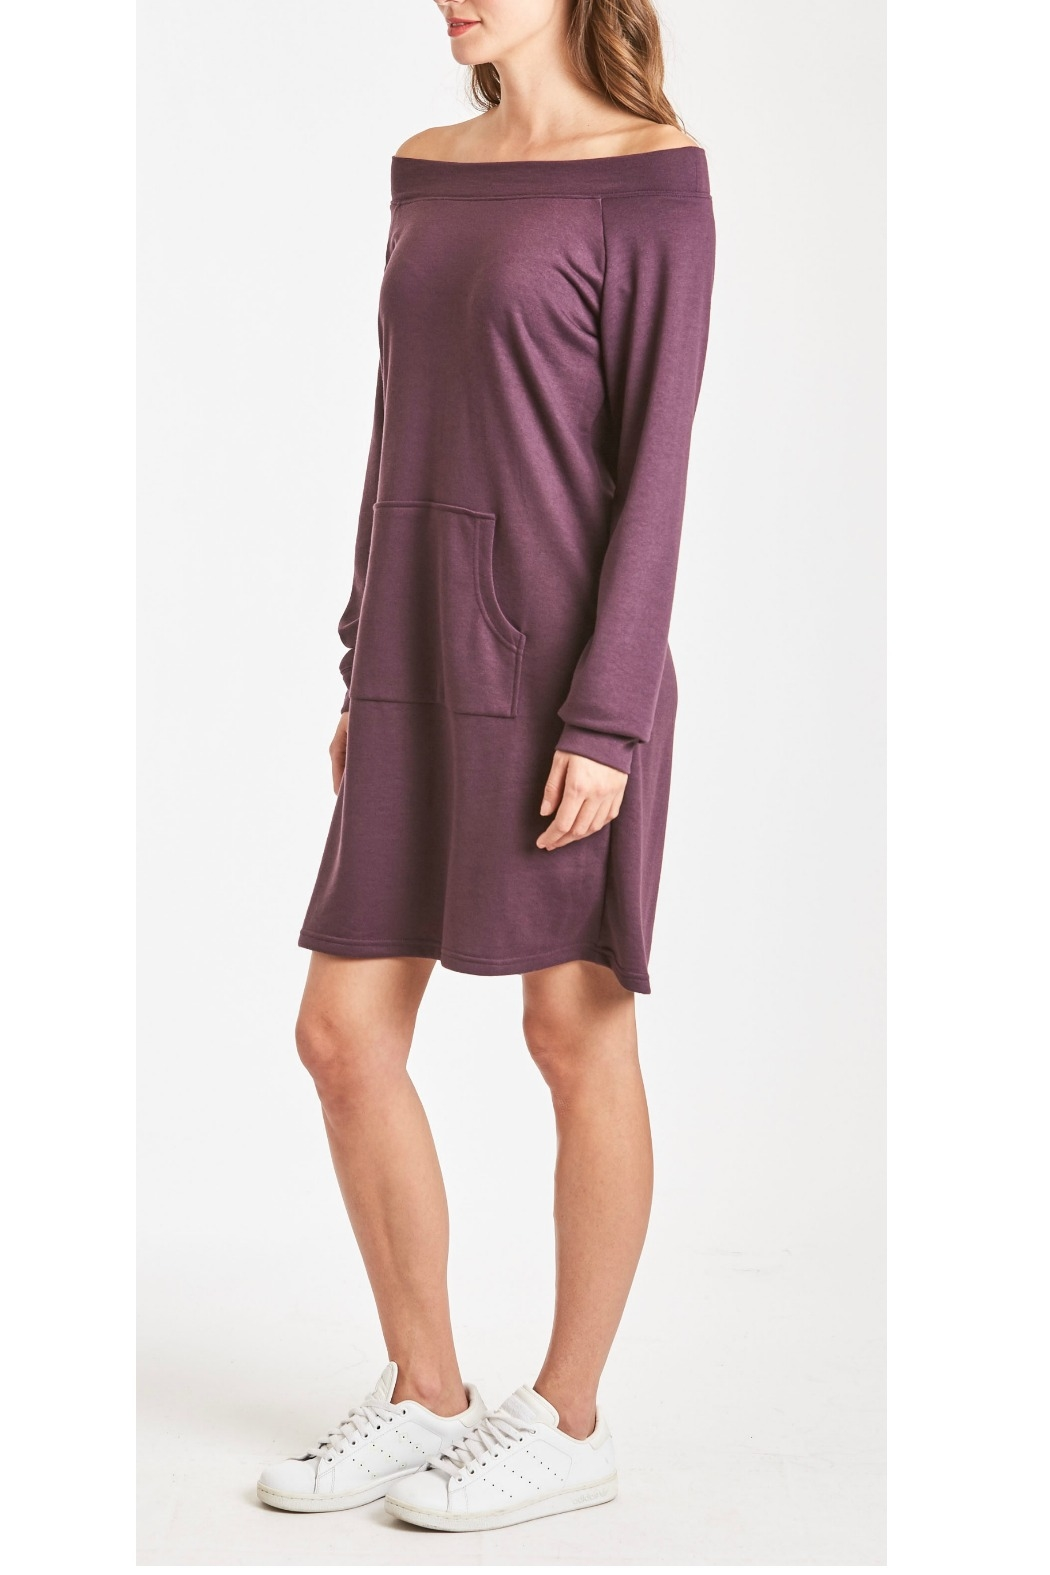 Another Love MaryJane Pocket Off-Shoulder Dress - Front Full Image